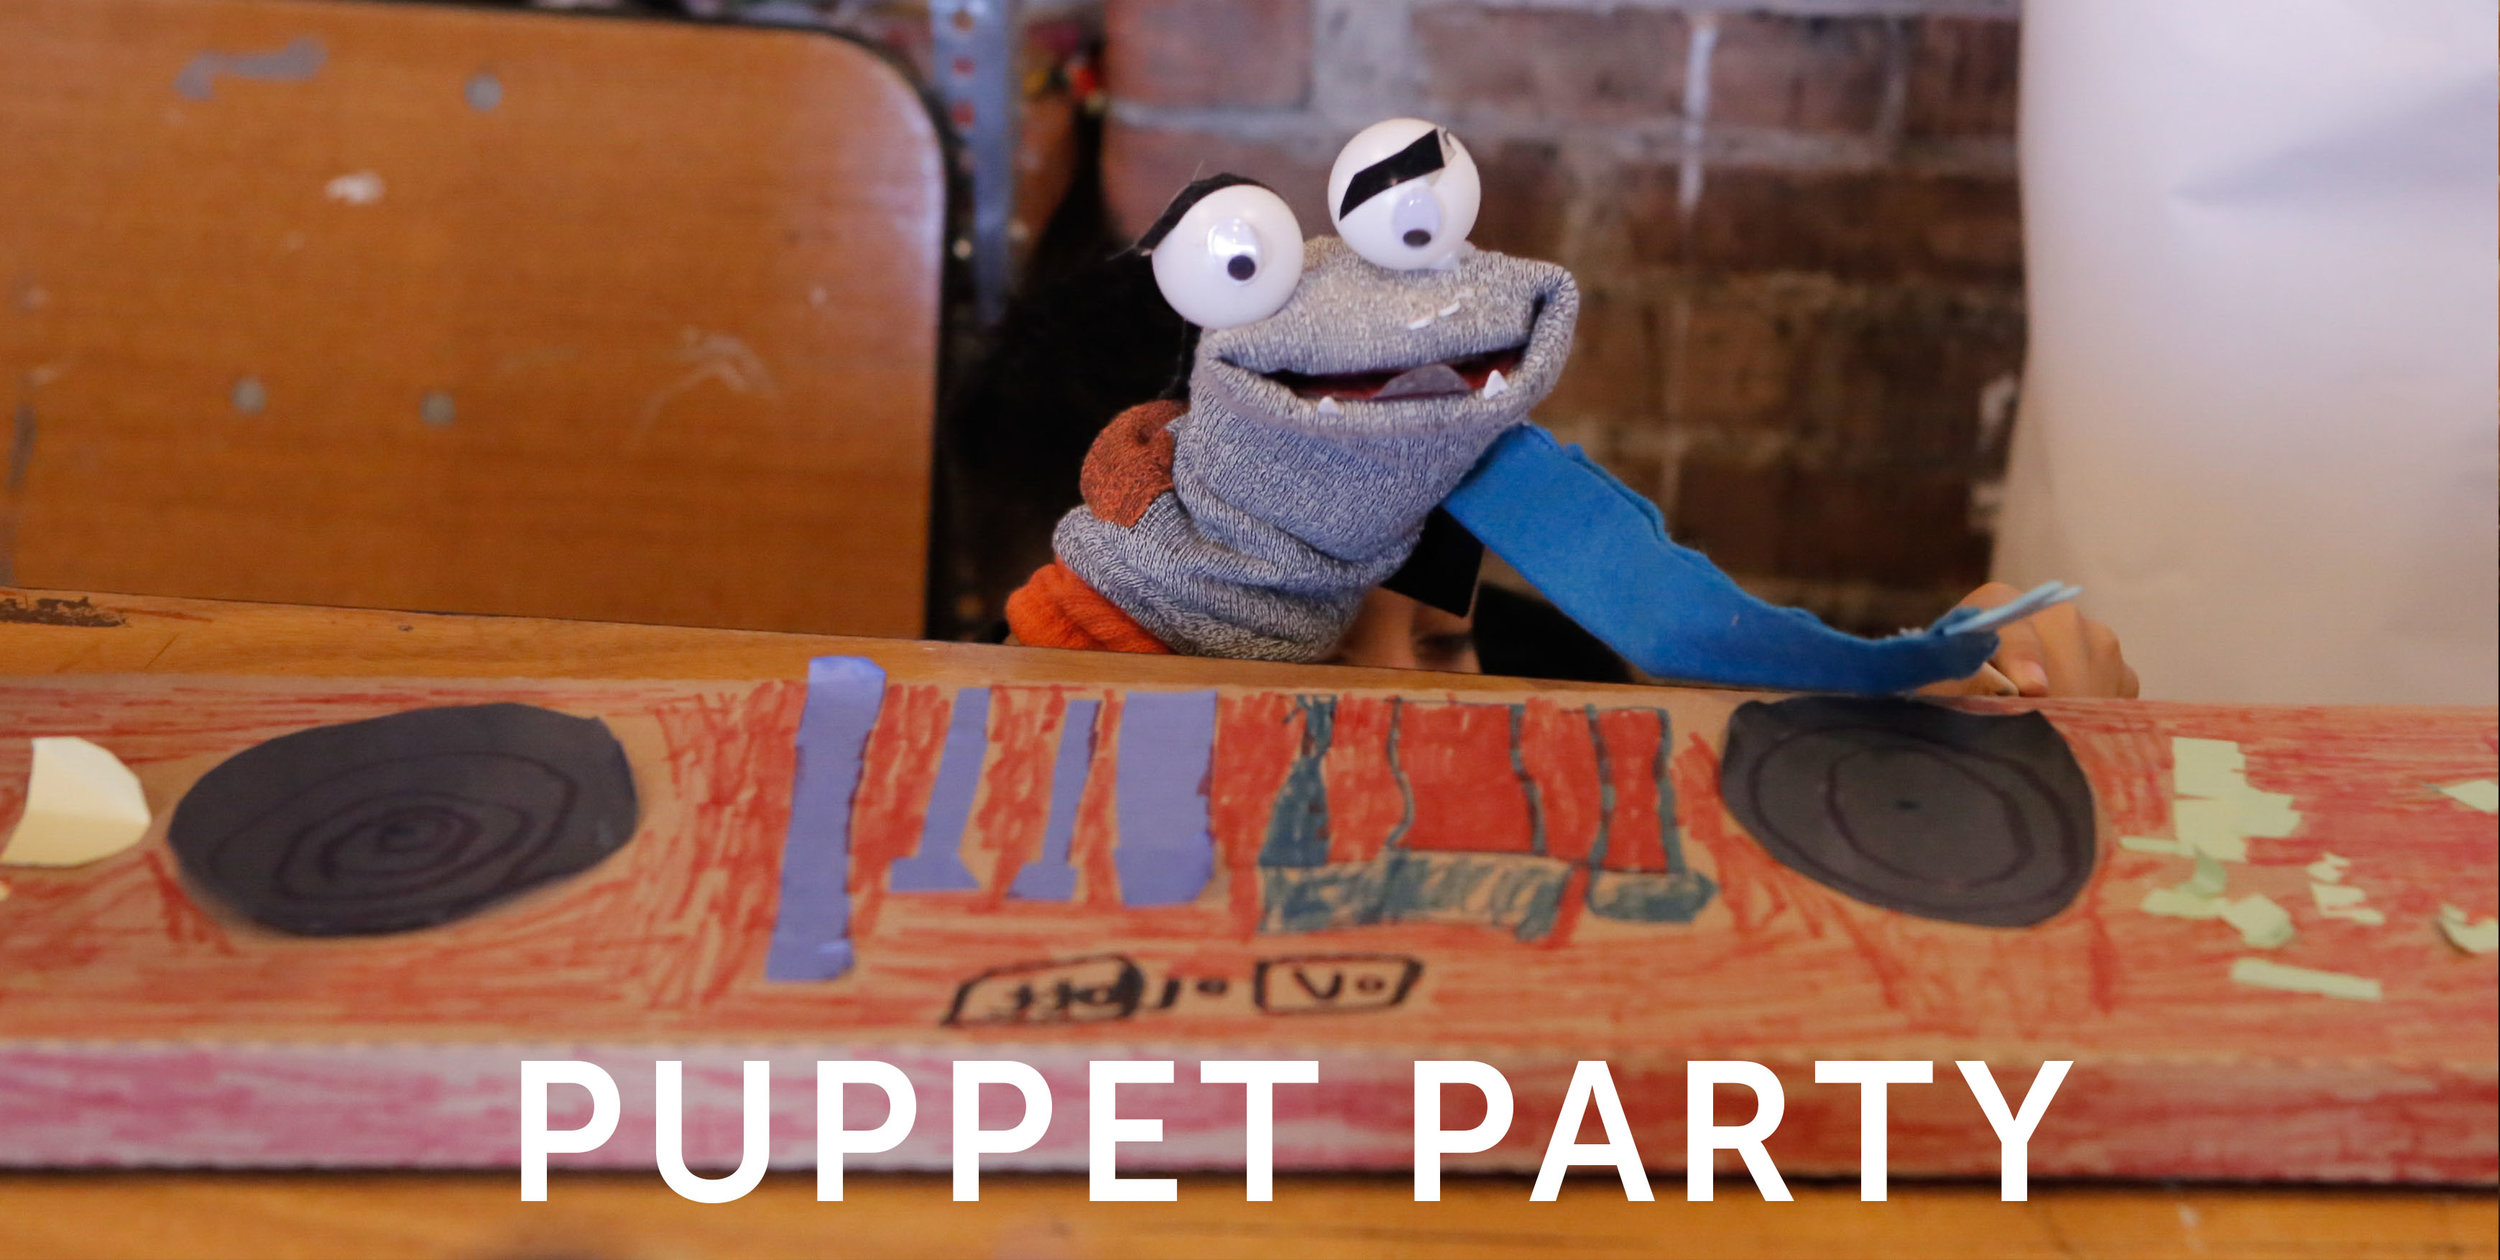 PuppetParty3.jpg